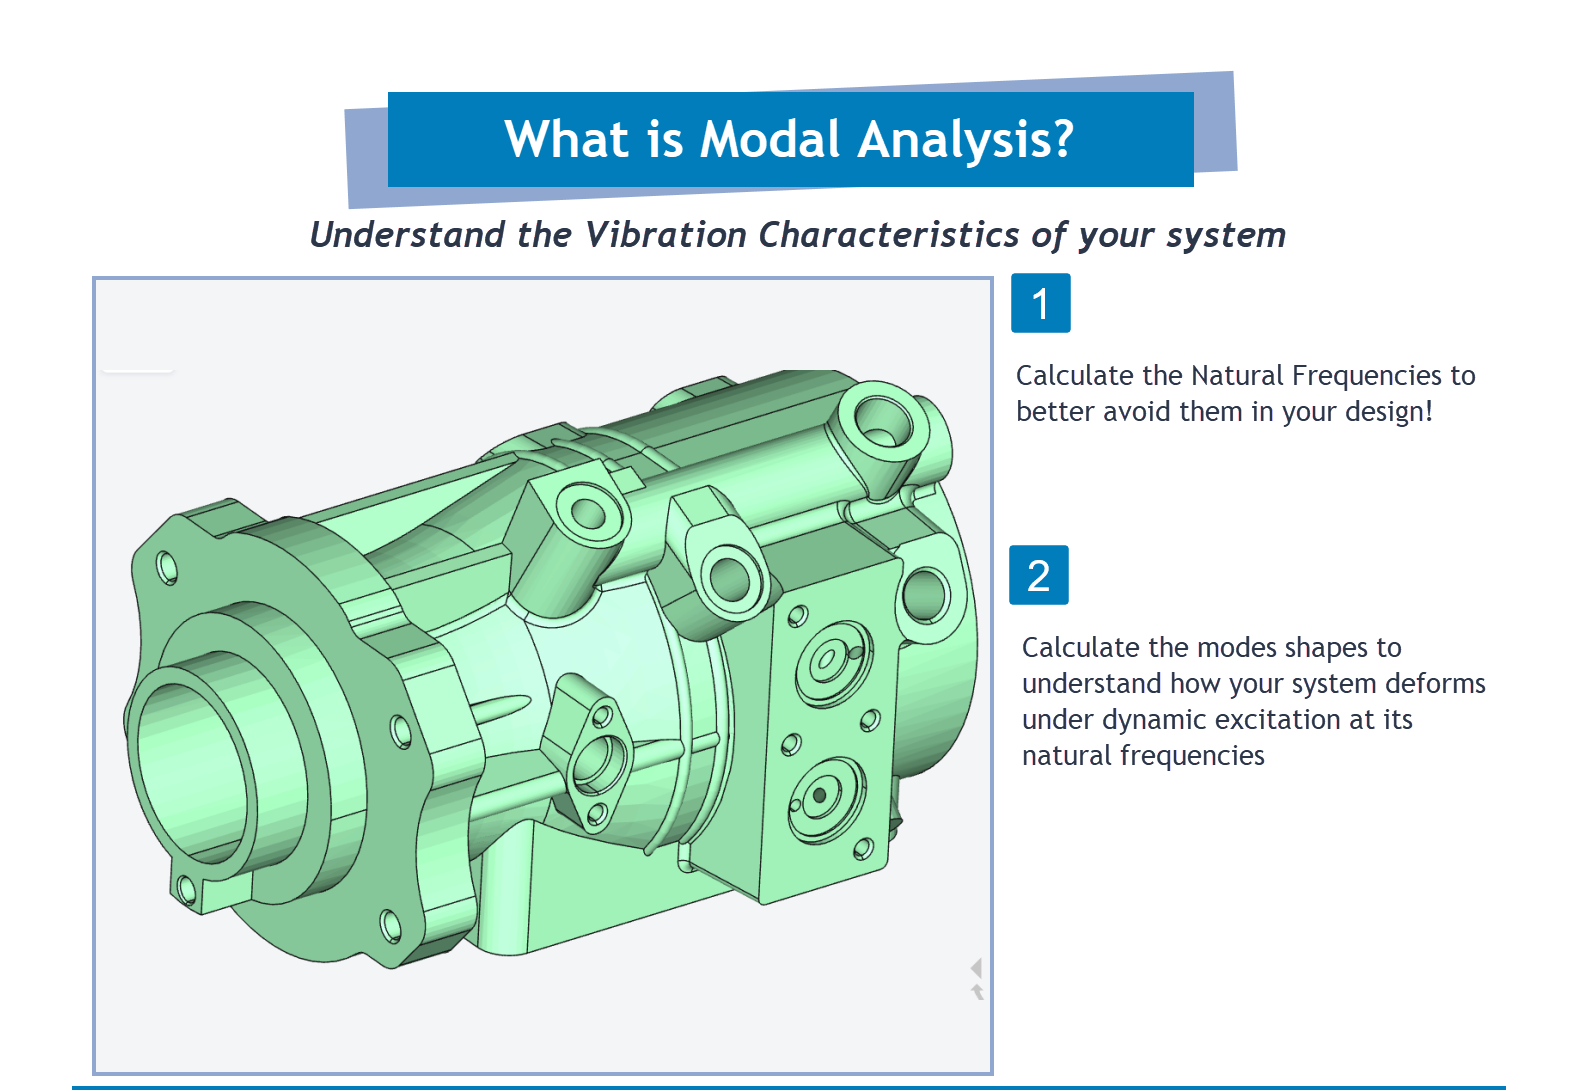 Understand the Vibration Characteristics of Your System